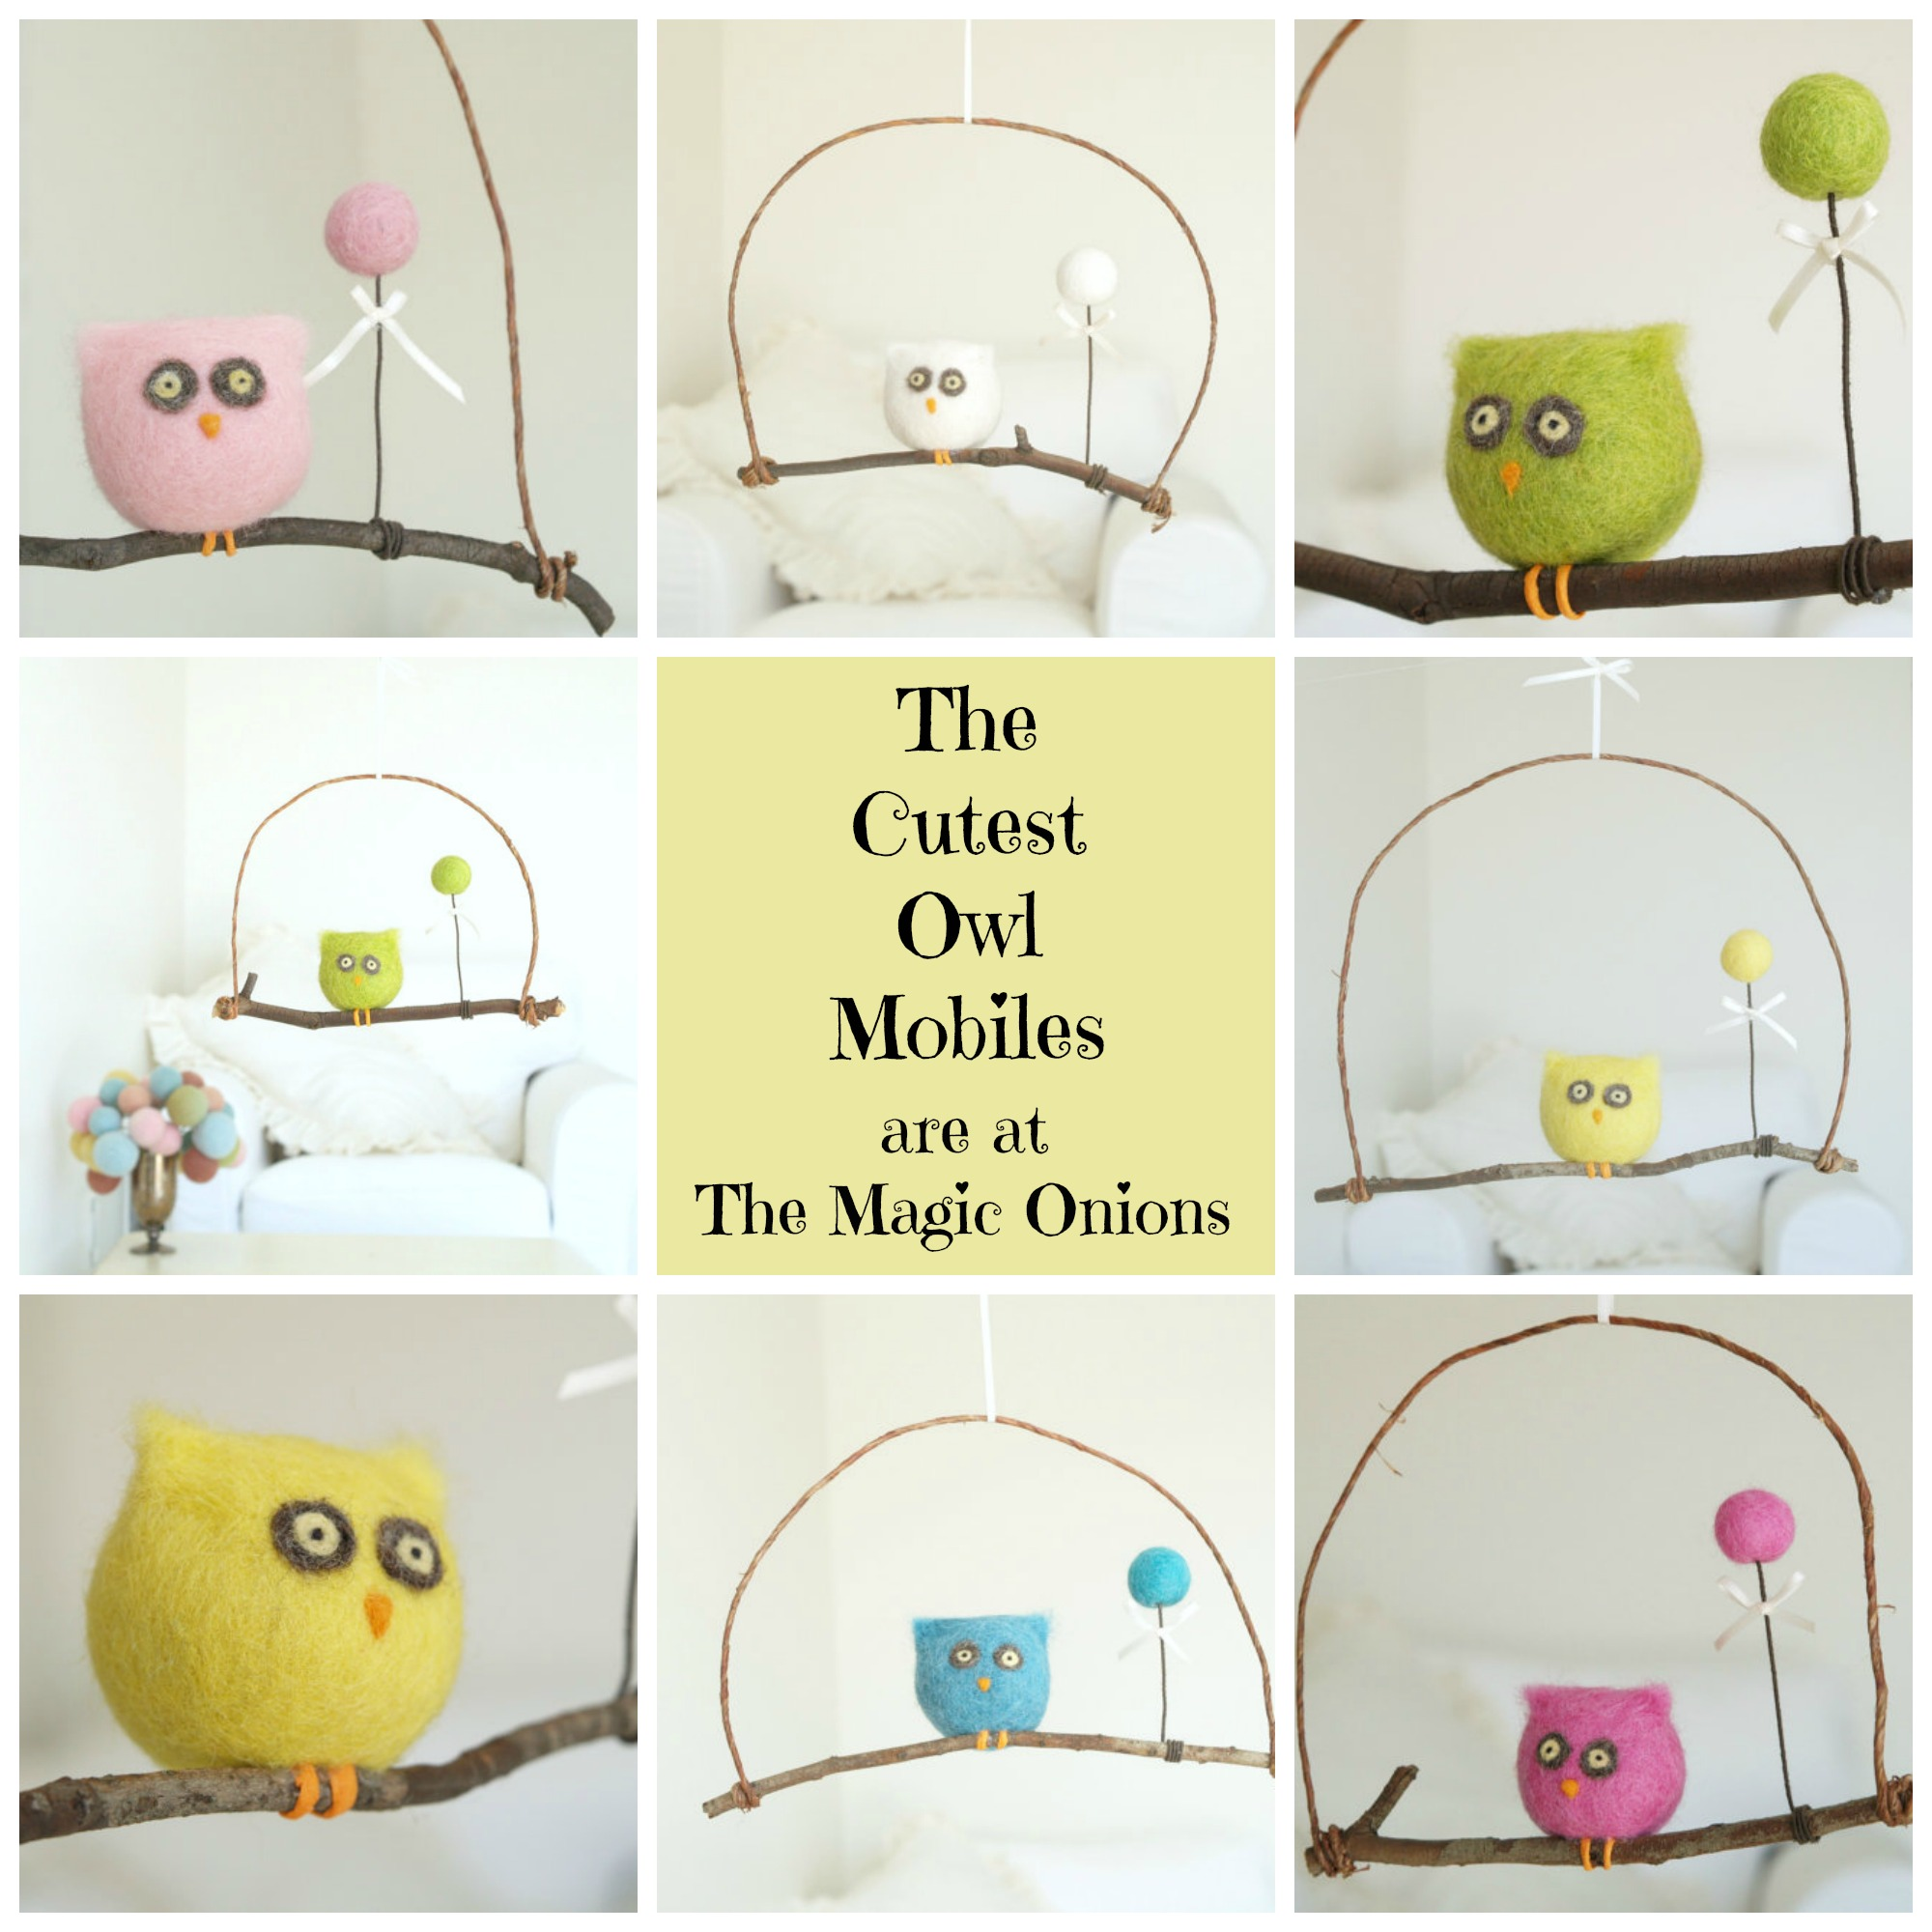 Cutest owl mobiles in town : Needle Felted from wool : www.theMagicOnions.com/shop/